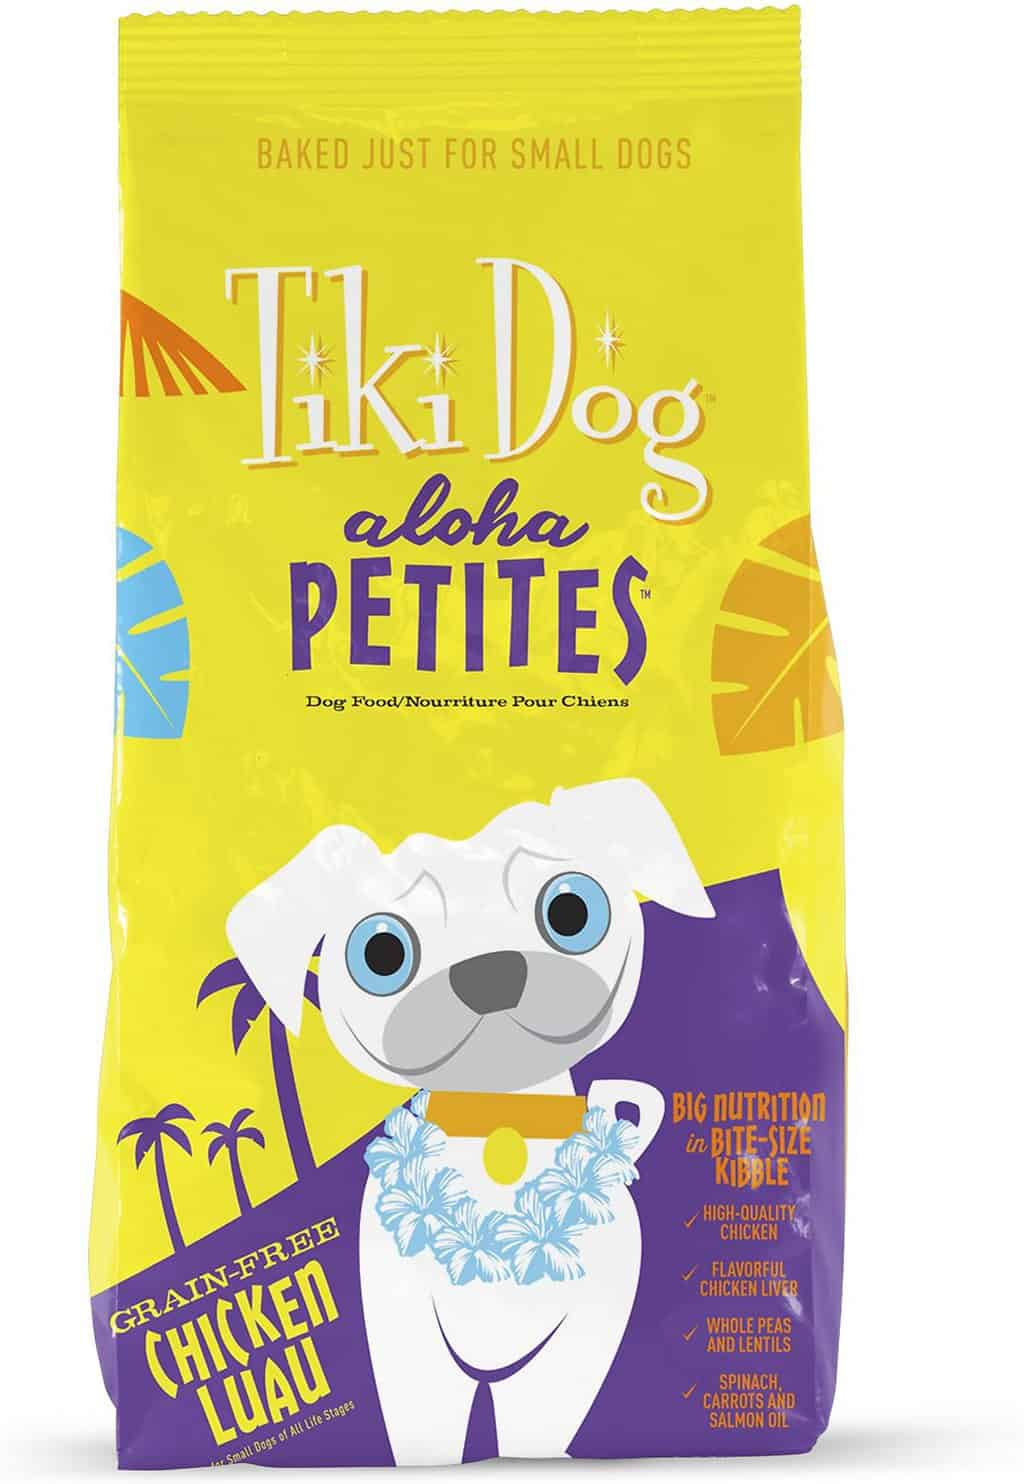 Tiki Dog Food: 2021 Reviews, Recalls & Coupons 25